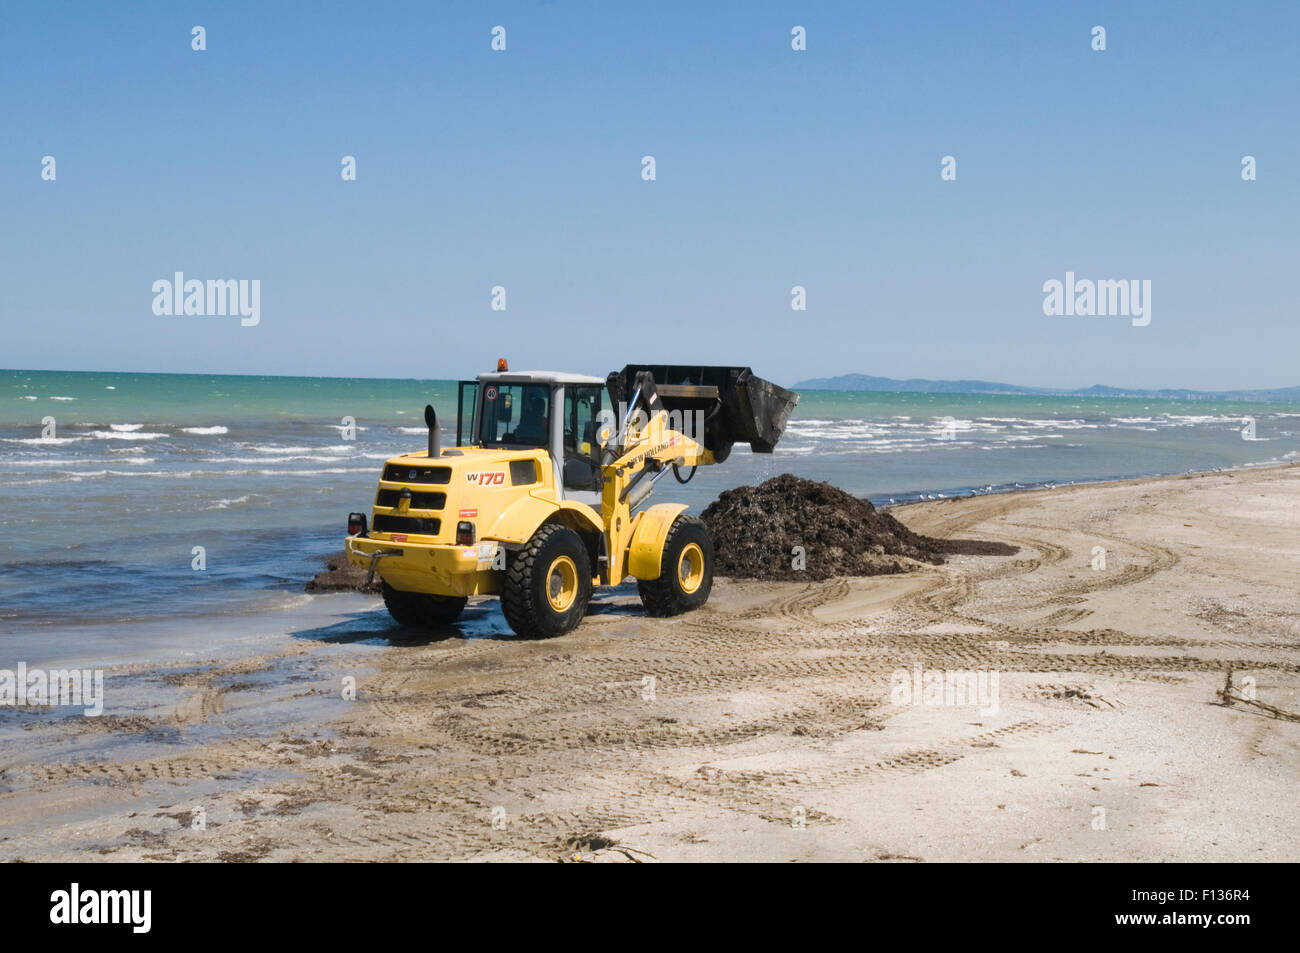 new holland digger diggers earth mover movers excavator earthmovers earthmover big yellow dig digging an hole bucket - Stock Image